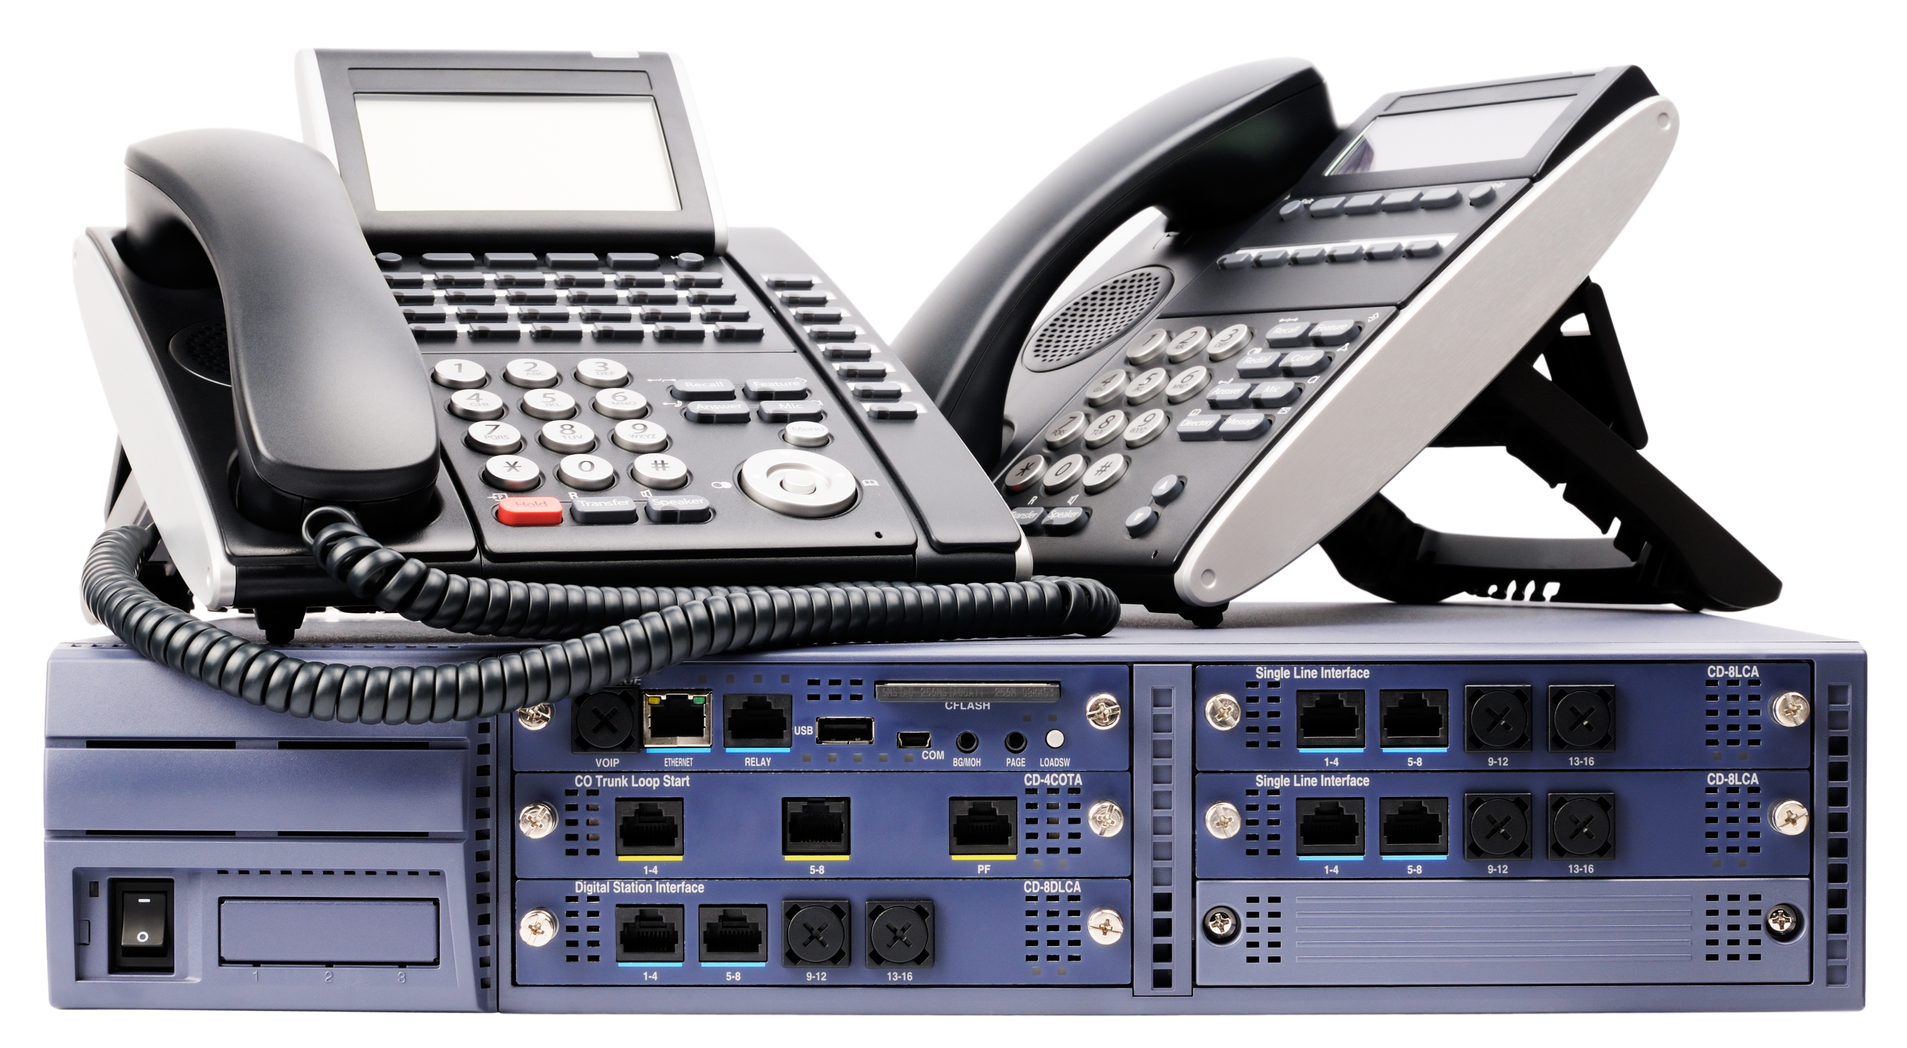 http://www.vdicommunications.com/wp-content/uploads/2014/04/Phone-System-Maintenance.jpg